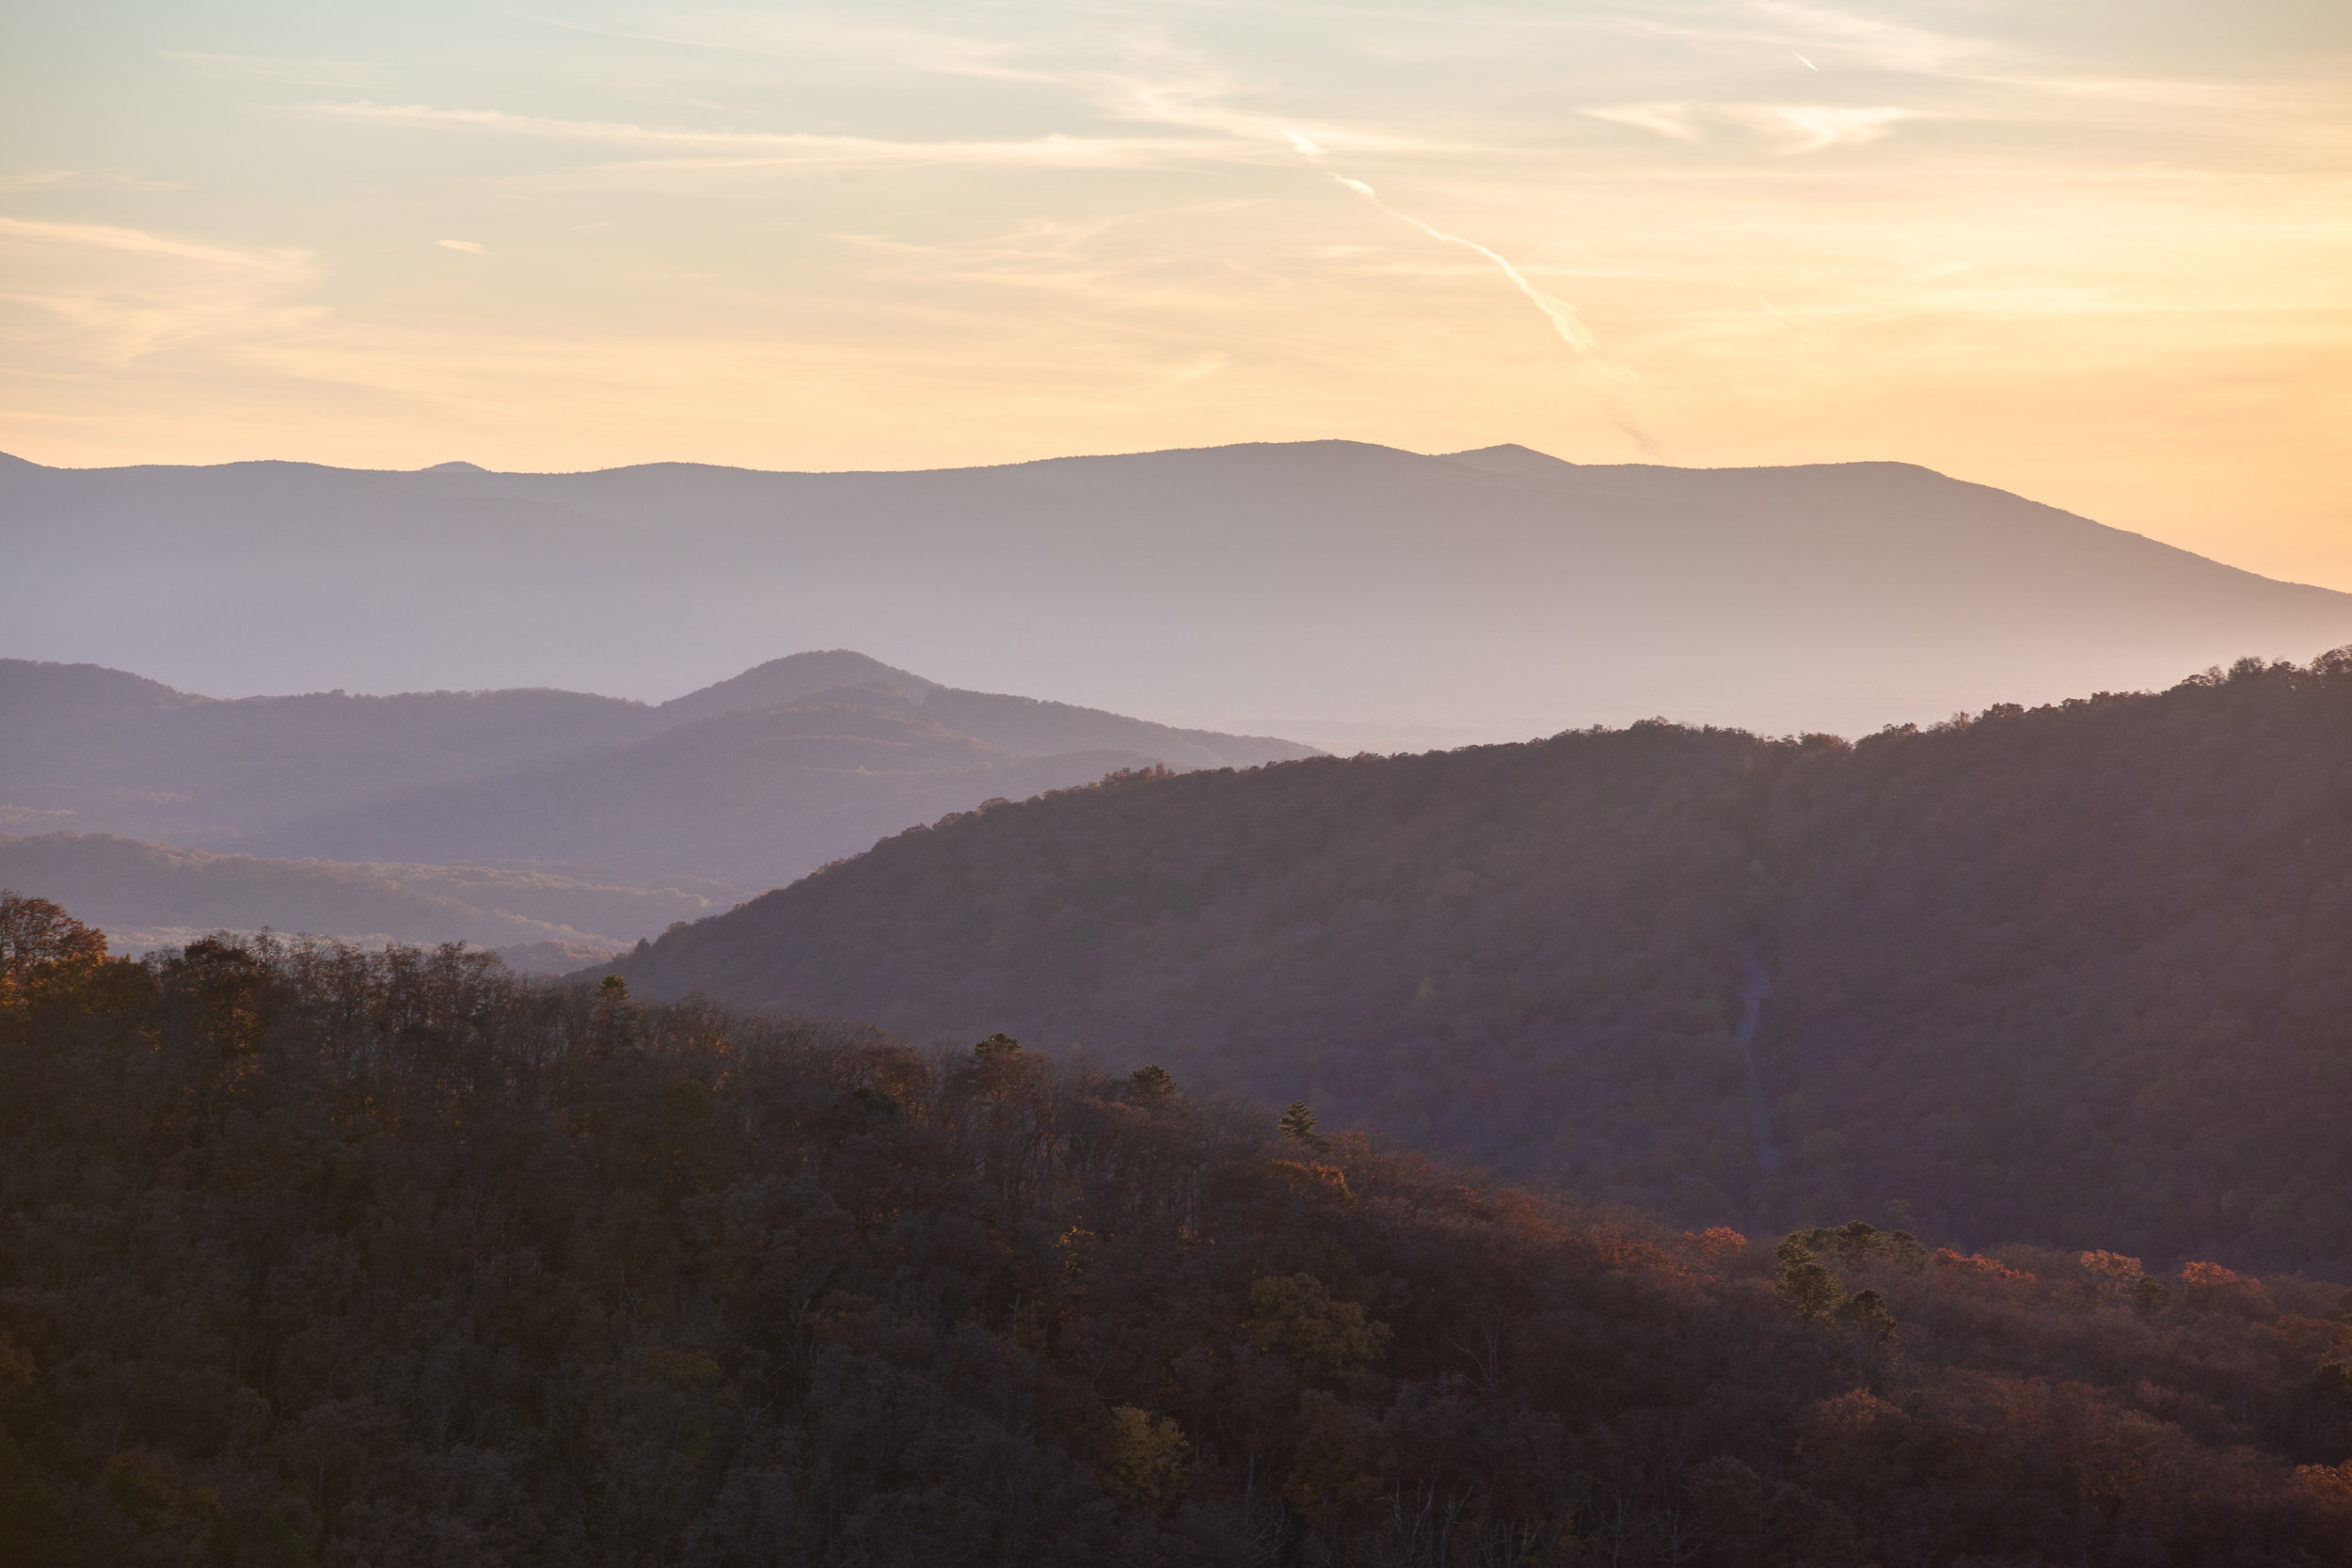 Shenandoah-National-Park-blue-ridge-parkway-day-mountains-afternoon-haze-layers-distance-texture-trees-fall-sunset-evening